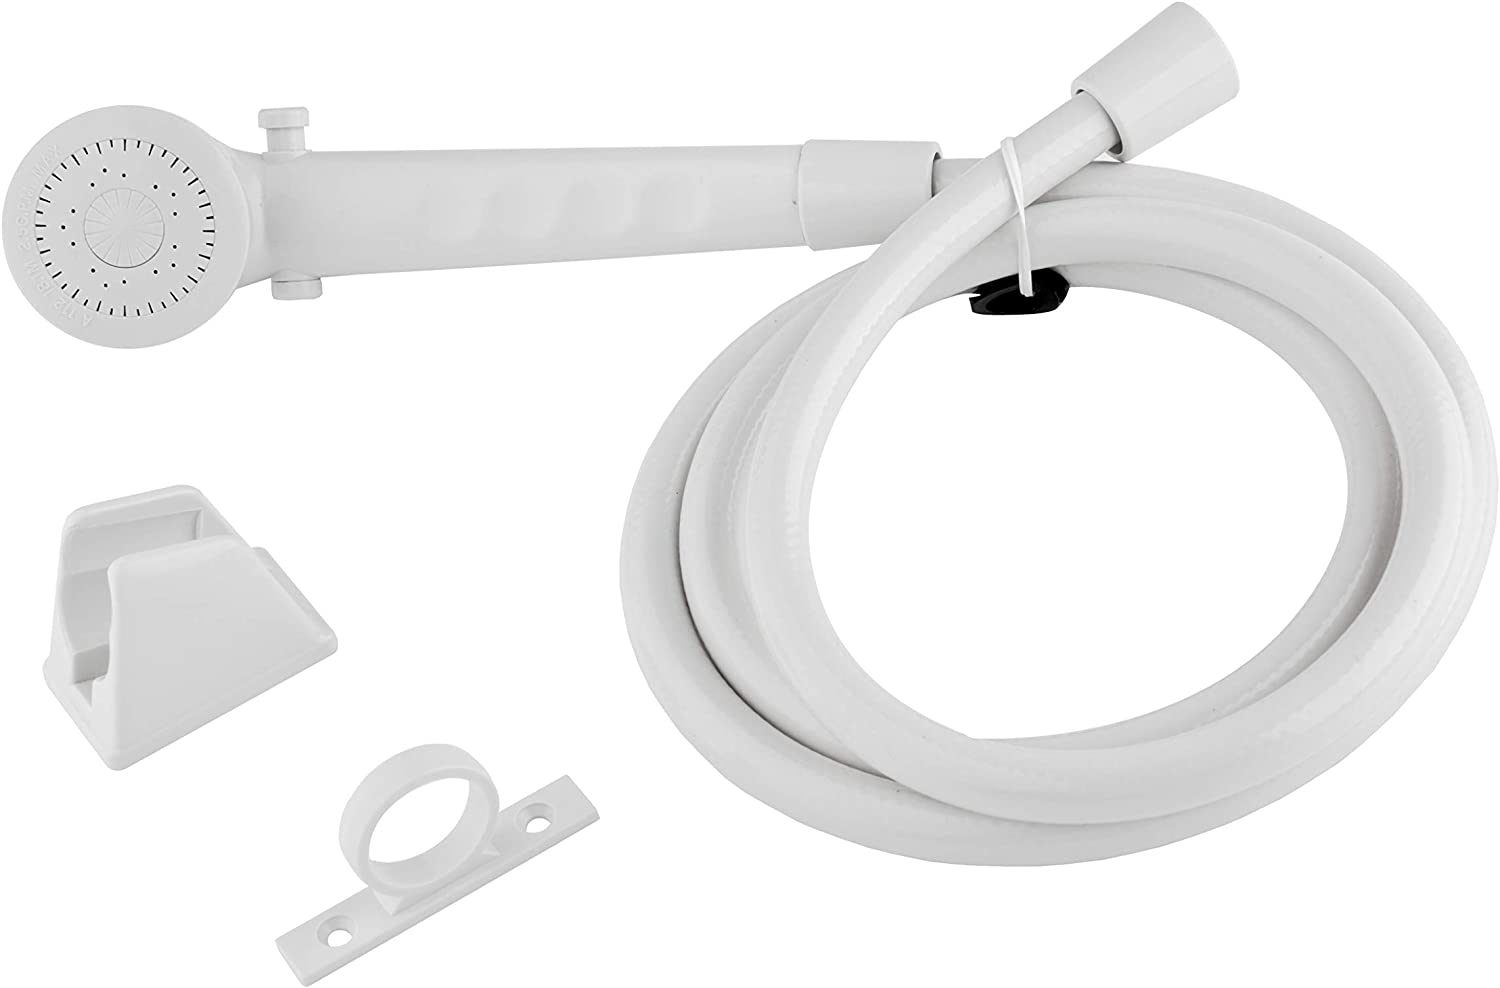 Dura Faucet DF-SA130-WT RV Shower Head and Hose Kit (White)